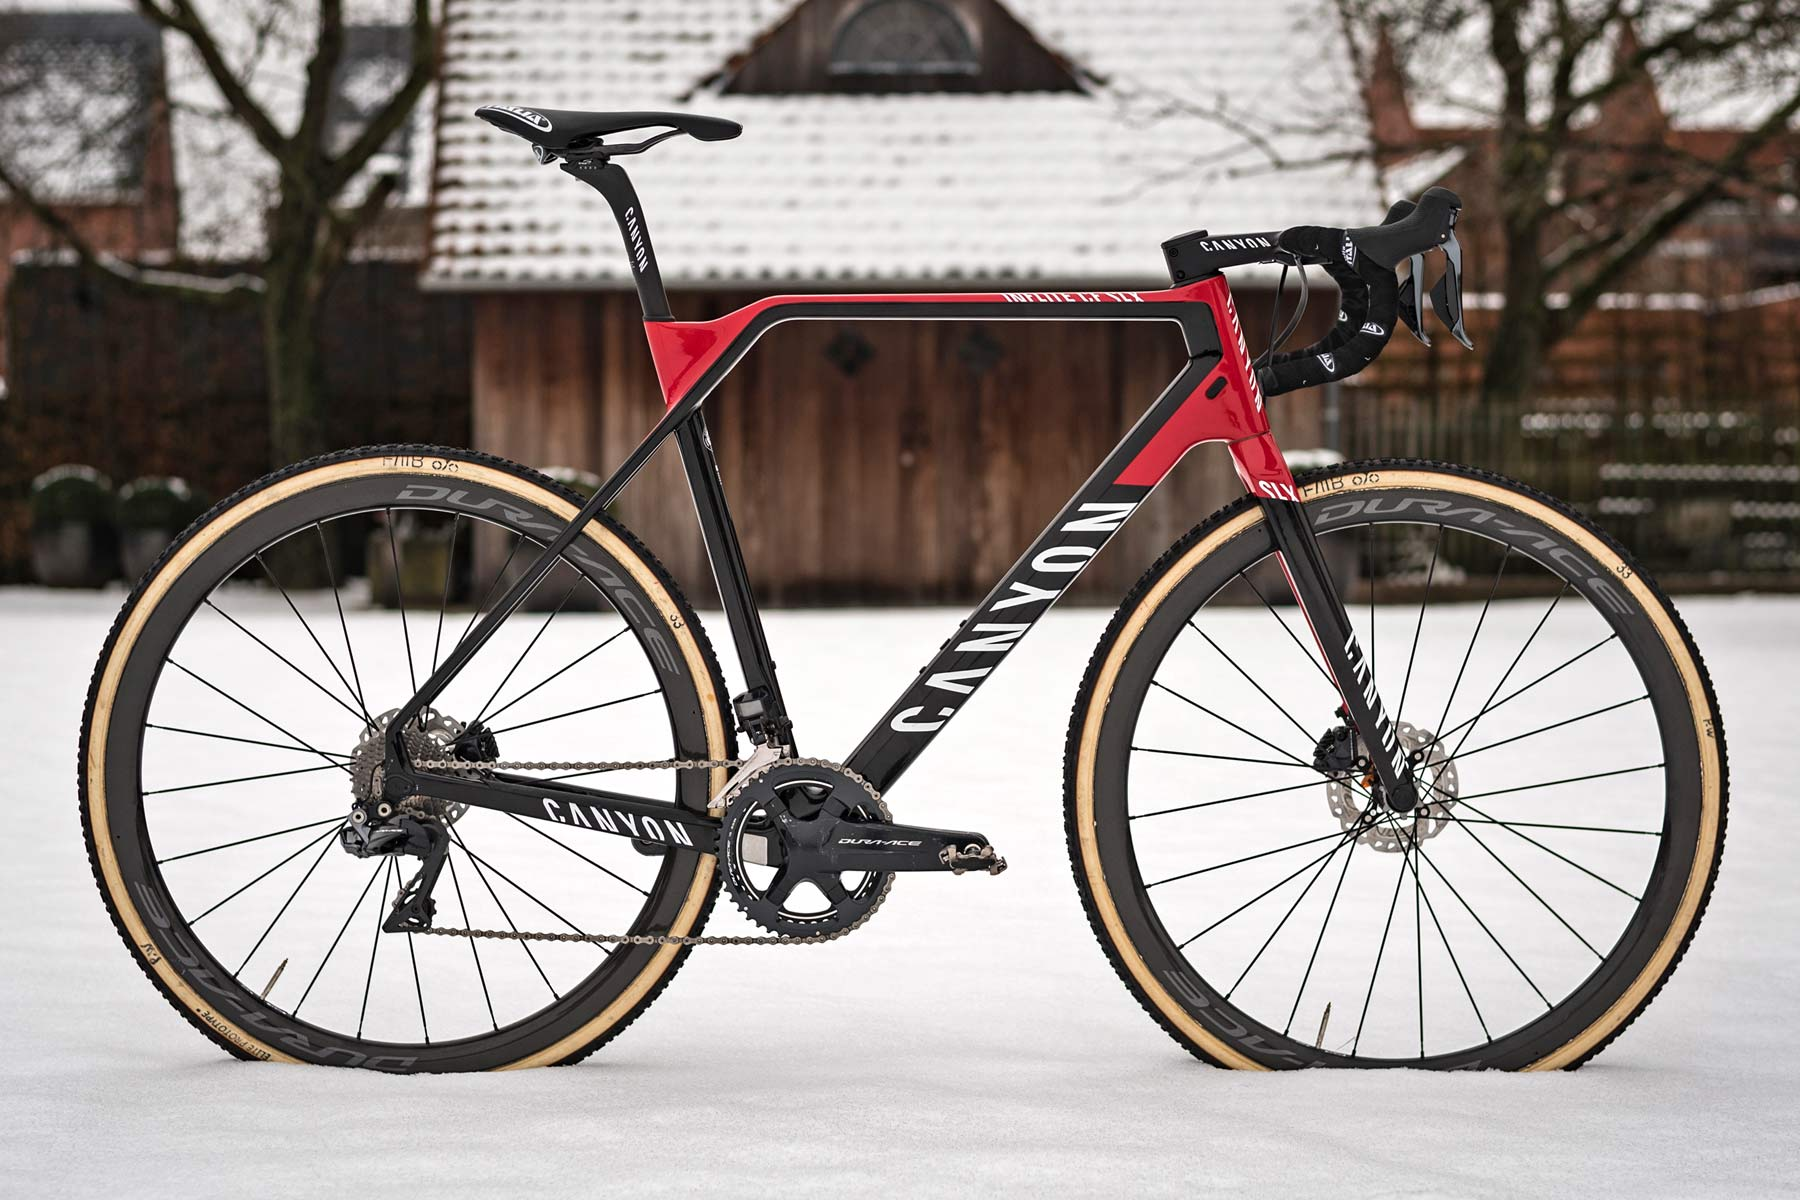 https://www.bikerumor.com/wp-content/uploads/2018/01/Canyon-Inflite-CF-SLX_carbon-cyclocross-race-bike_Mathieu-van-der-Poel_Corendon-Circus_photo-by-Stefan-Simak_snow-bike.jpg